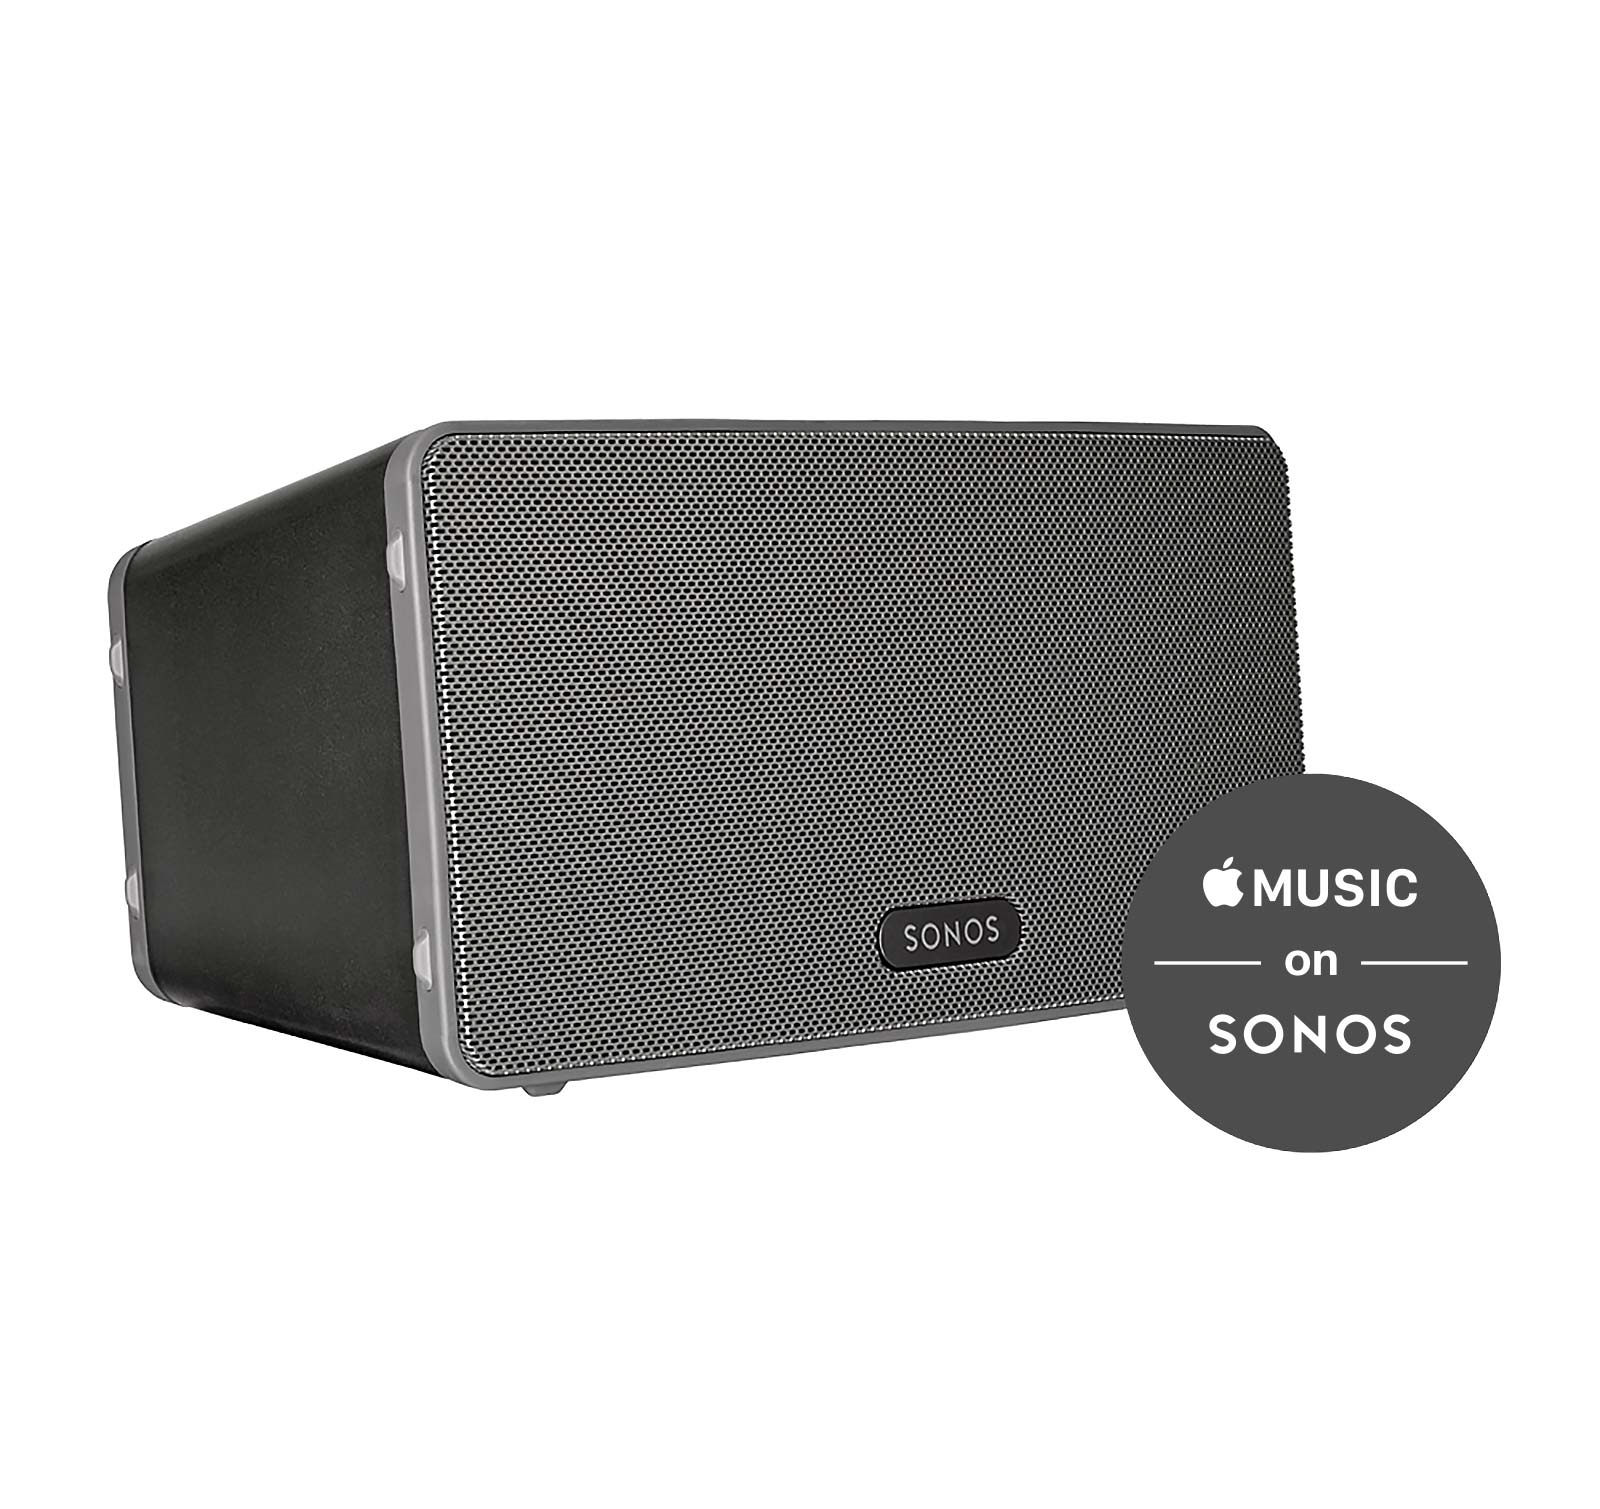 Image of the Sonos PLAY:3 Black All-In-One Wireless Music Playe